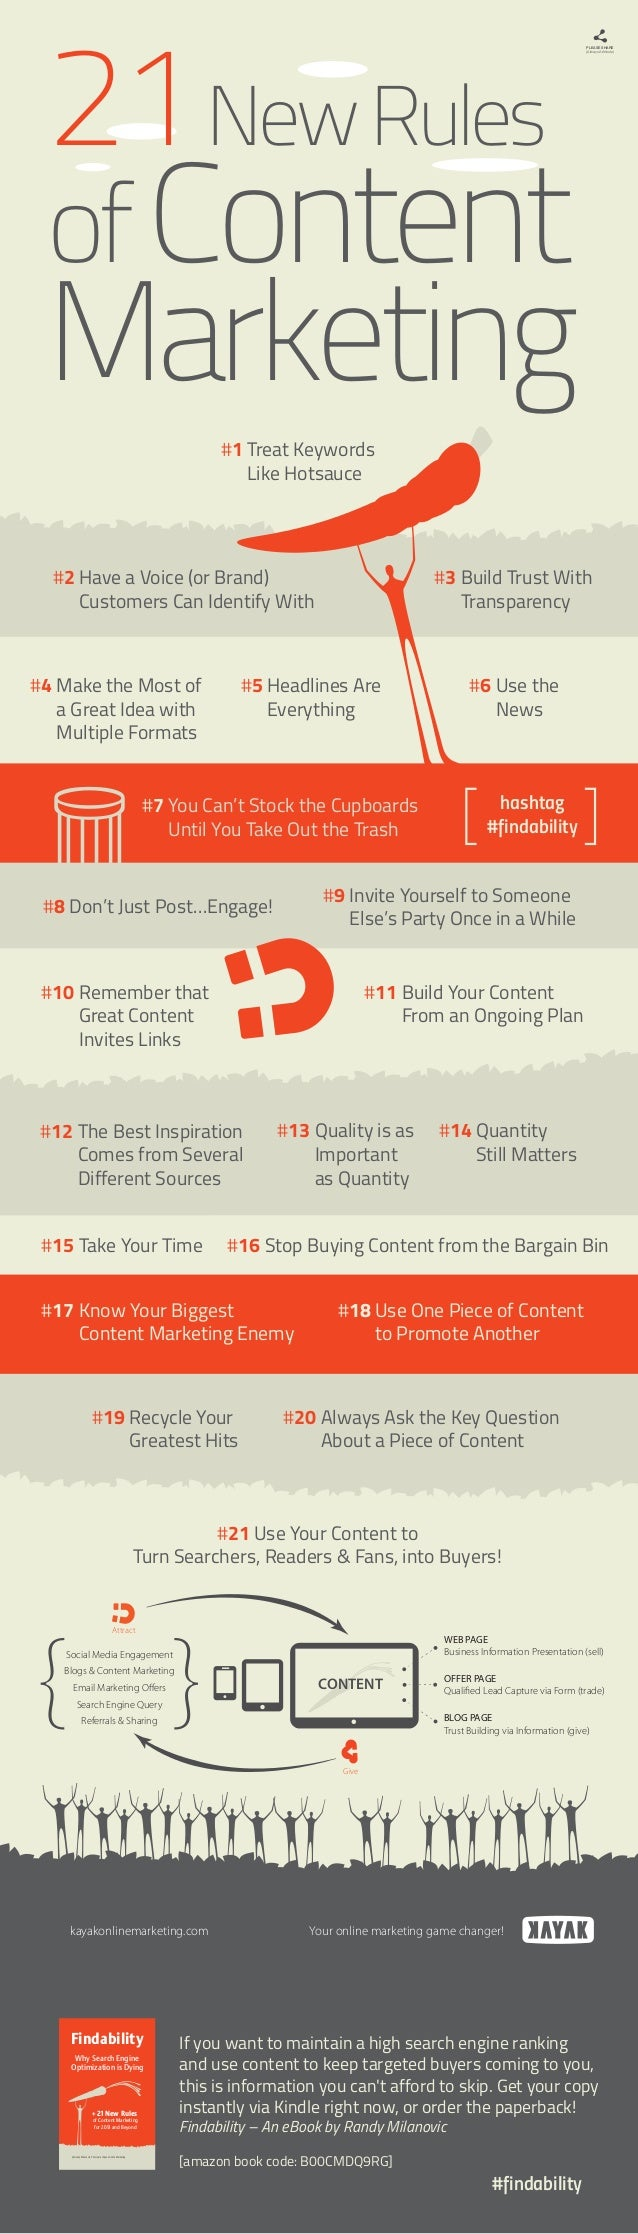 The 21 new rules of content marketing infographic.